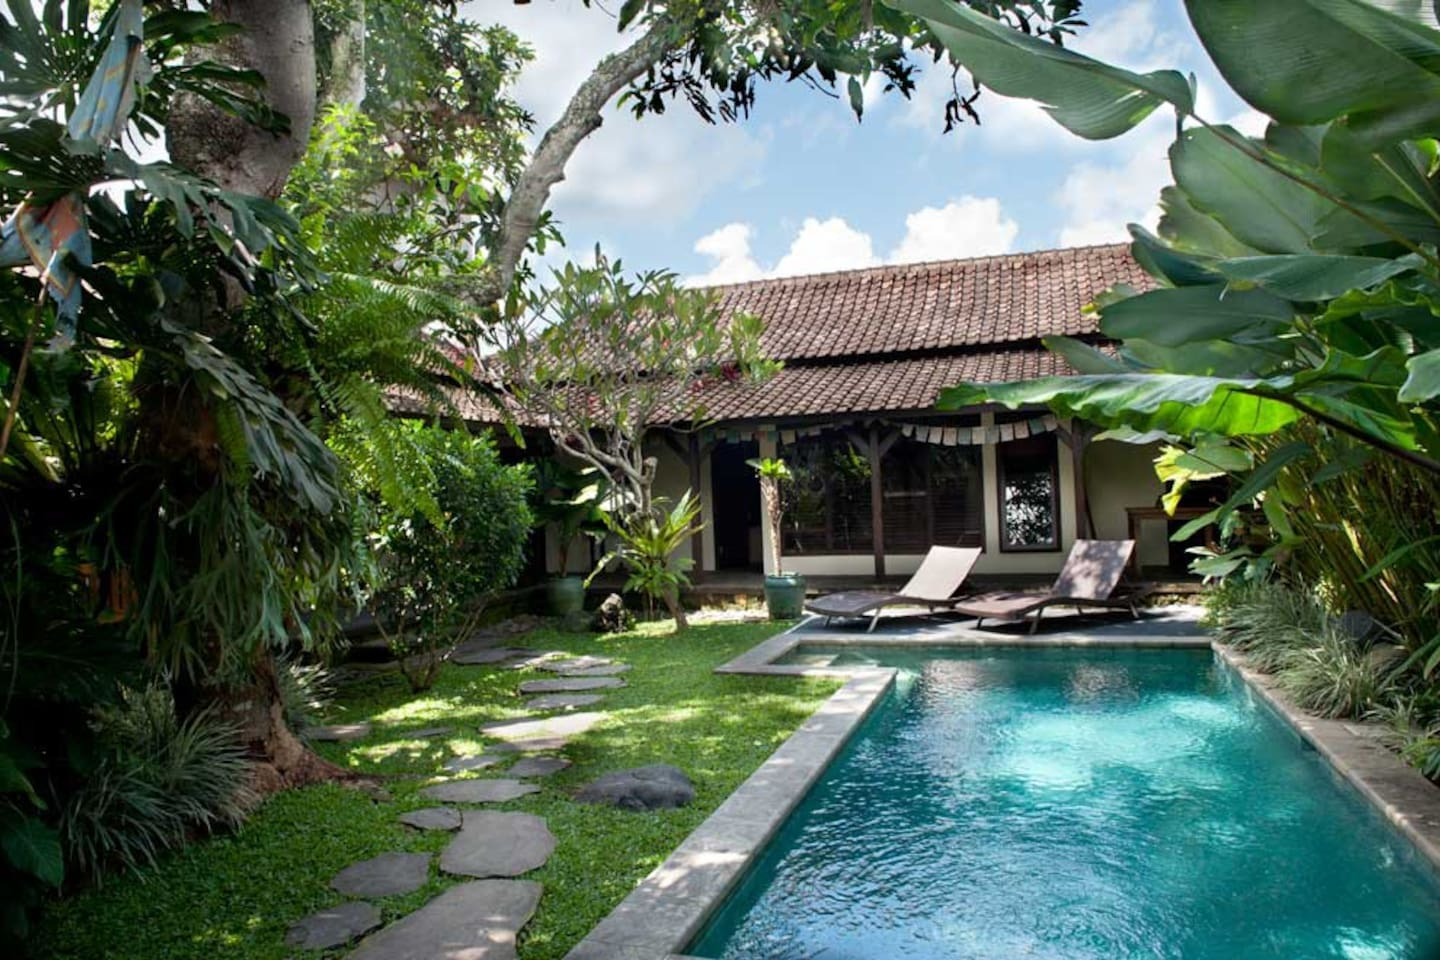 The 7meter pool is set in a lush garden shaded by tropical trees. (pool is shared).